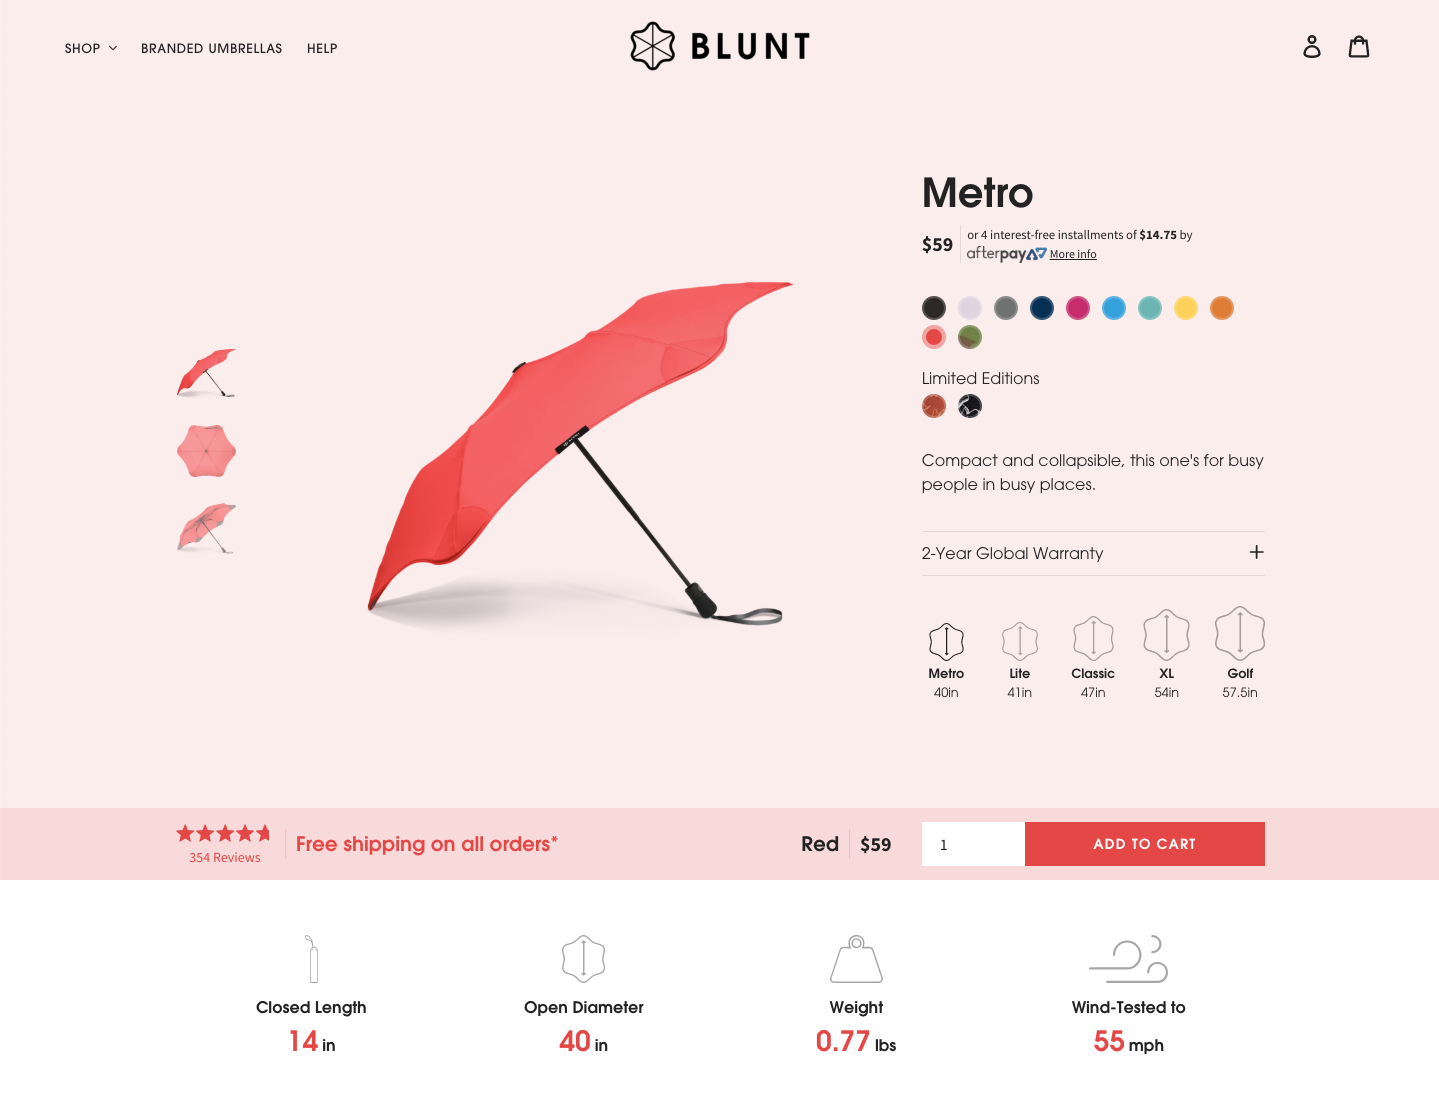 Blunt Umbrellas USA Redesign